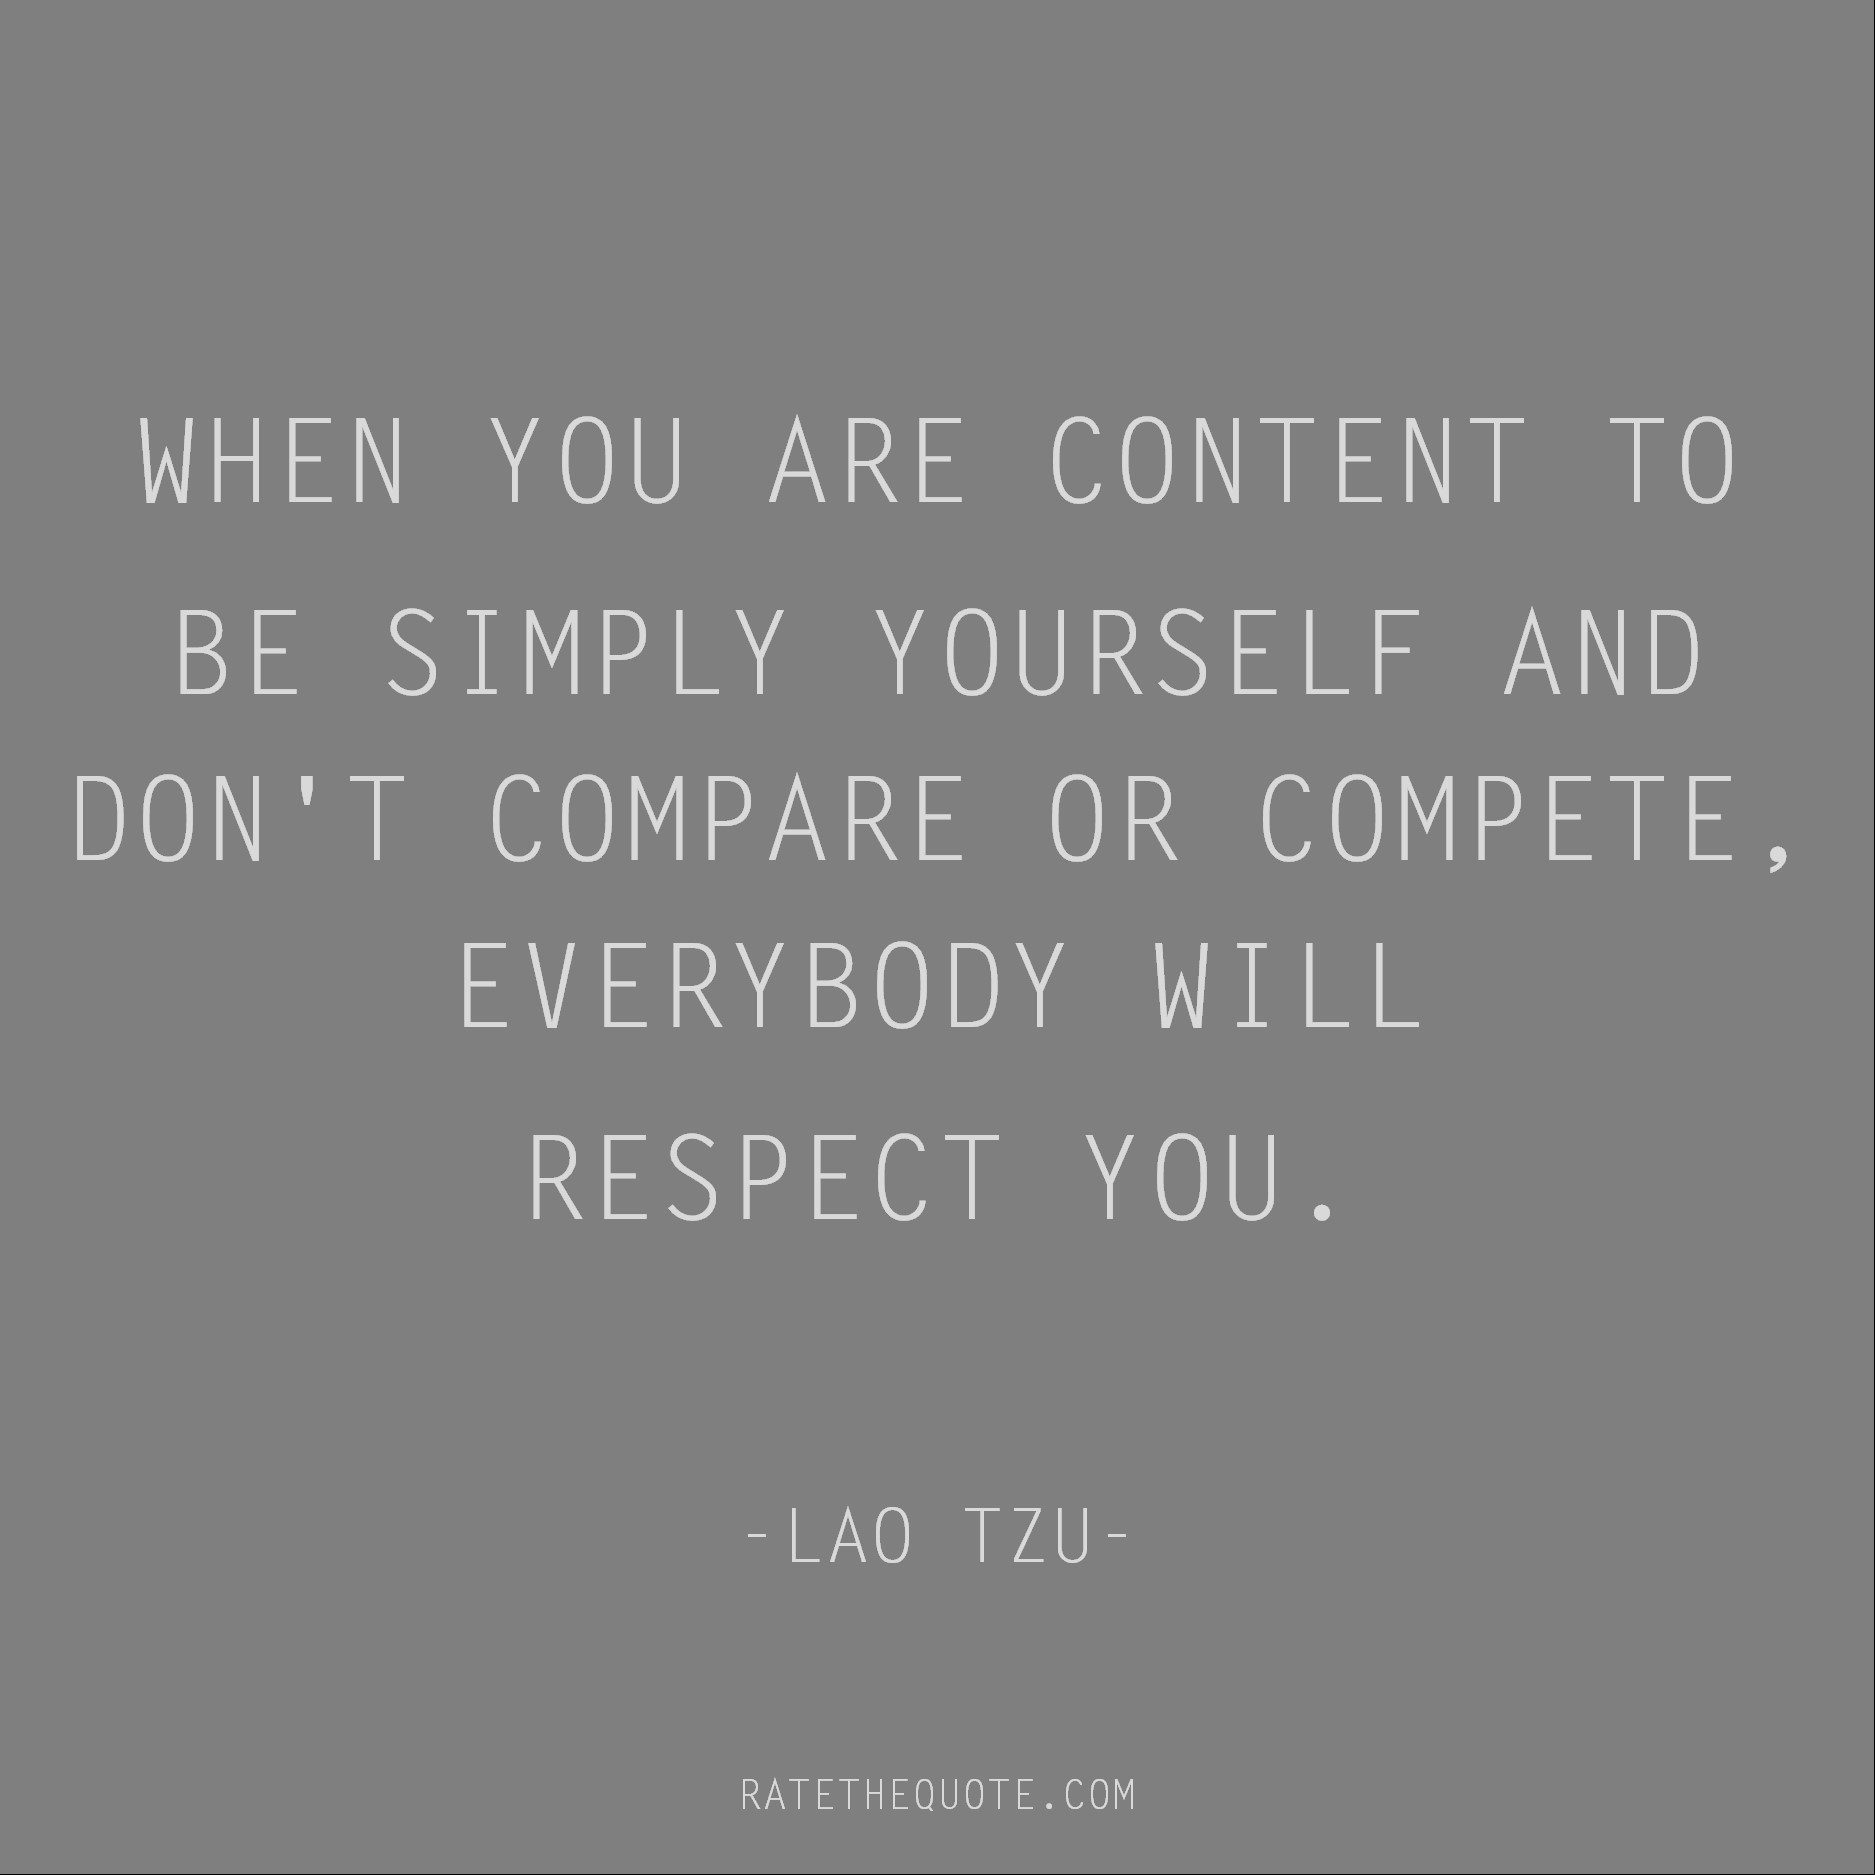 Respect Quotes Archives Ratethequote